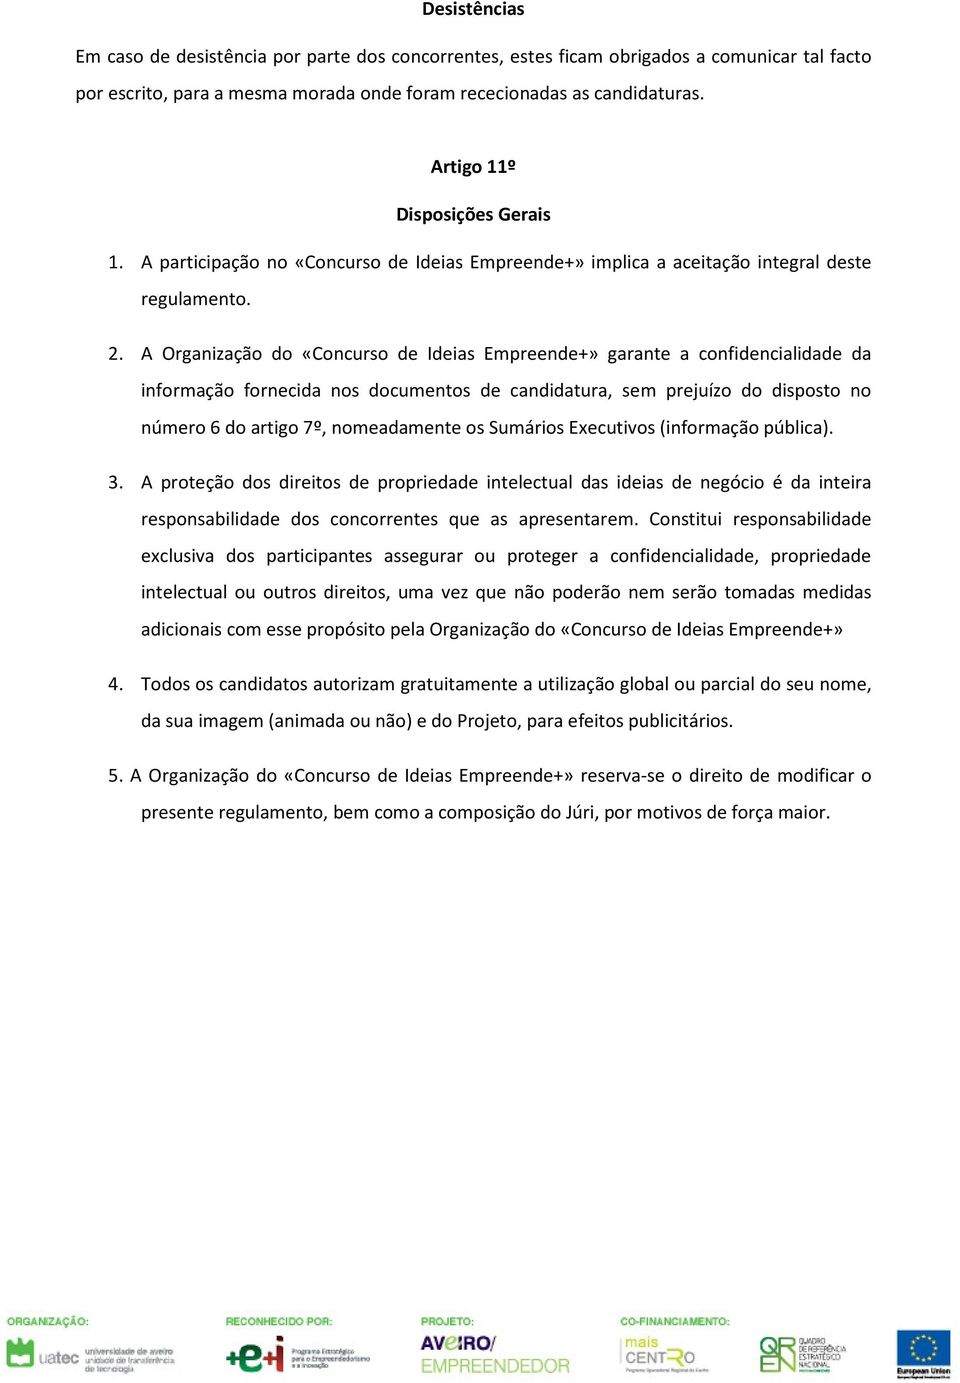 A Organização do «Concurso de Ideias Empreende+» garante a confidencialidade da informação fornecida nos documentos de candidatura, sem prejuízo do disposto no número 6 do artigo 7º, nomeadamente os